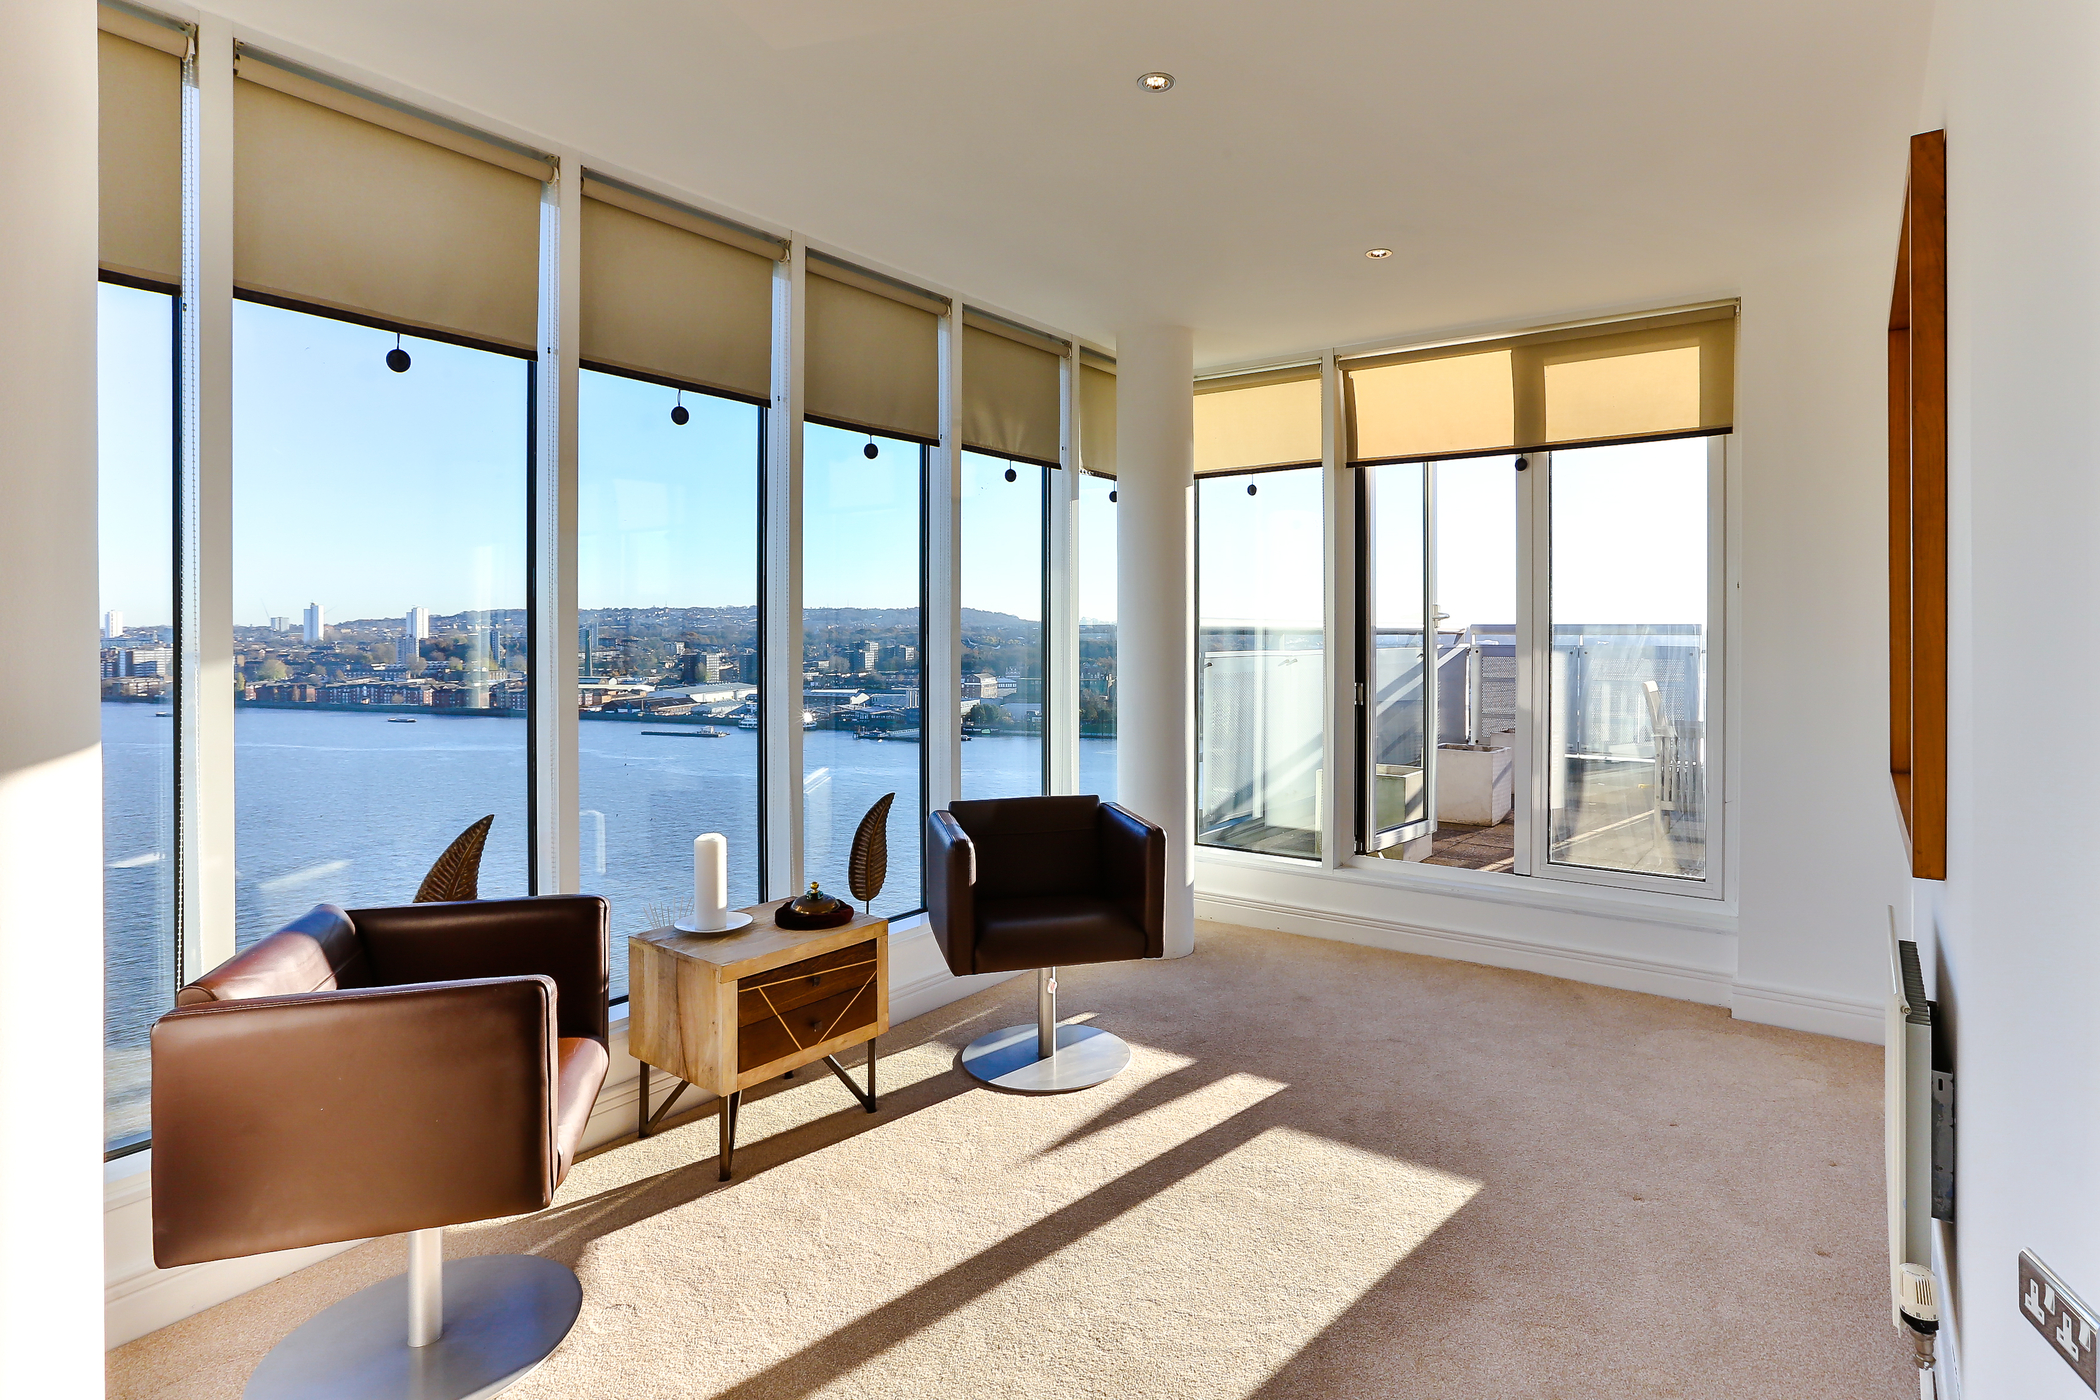 Stunning Penthouse Flat | Thames Barrier London